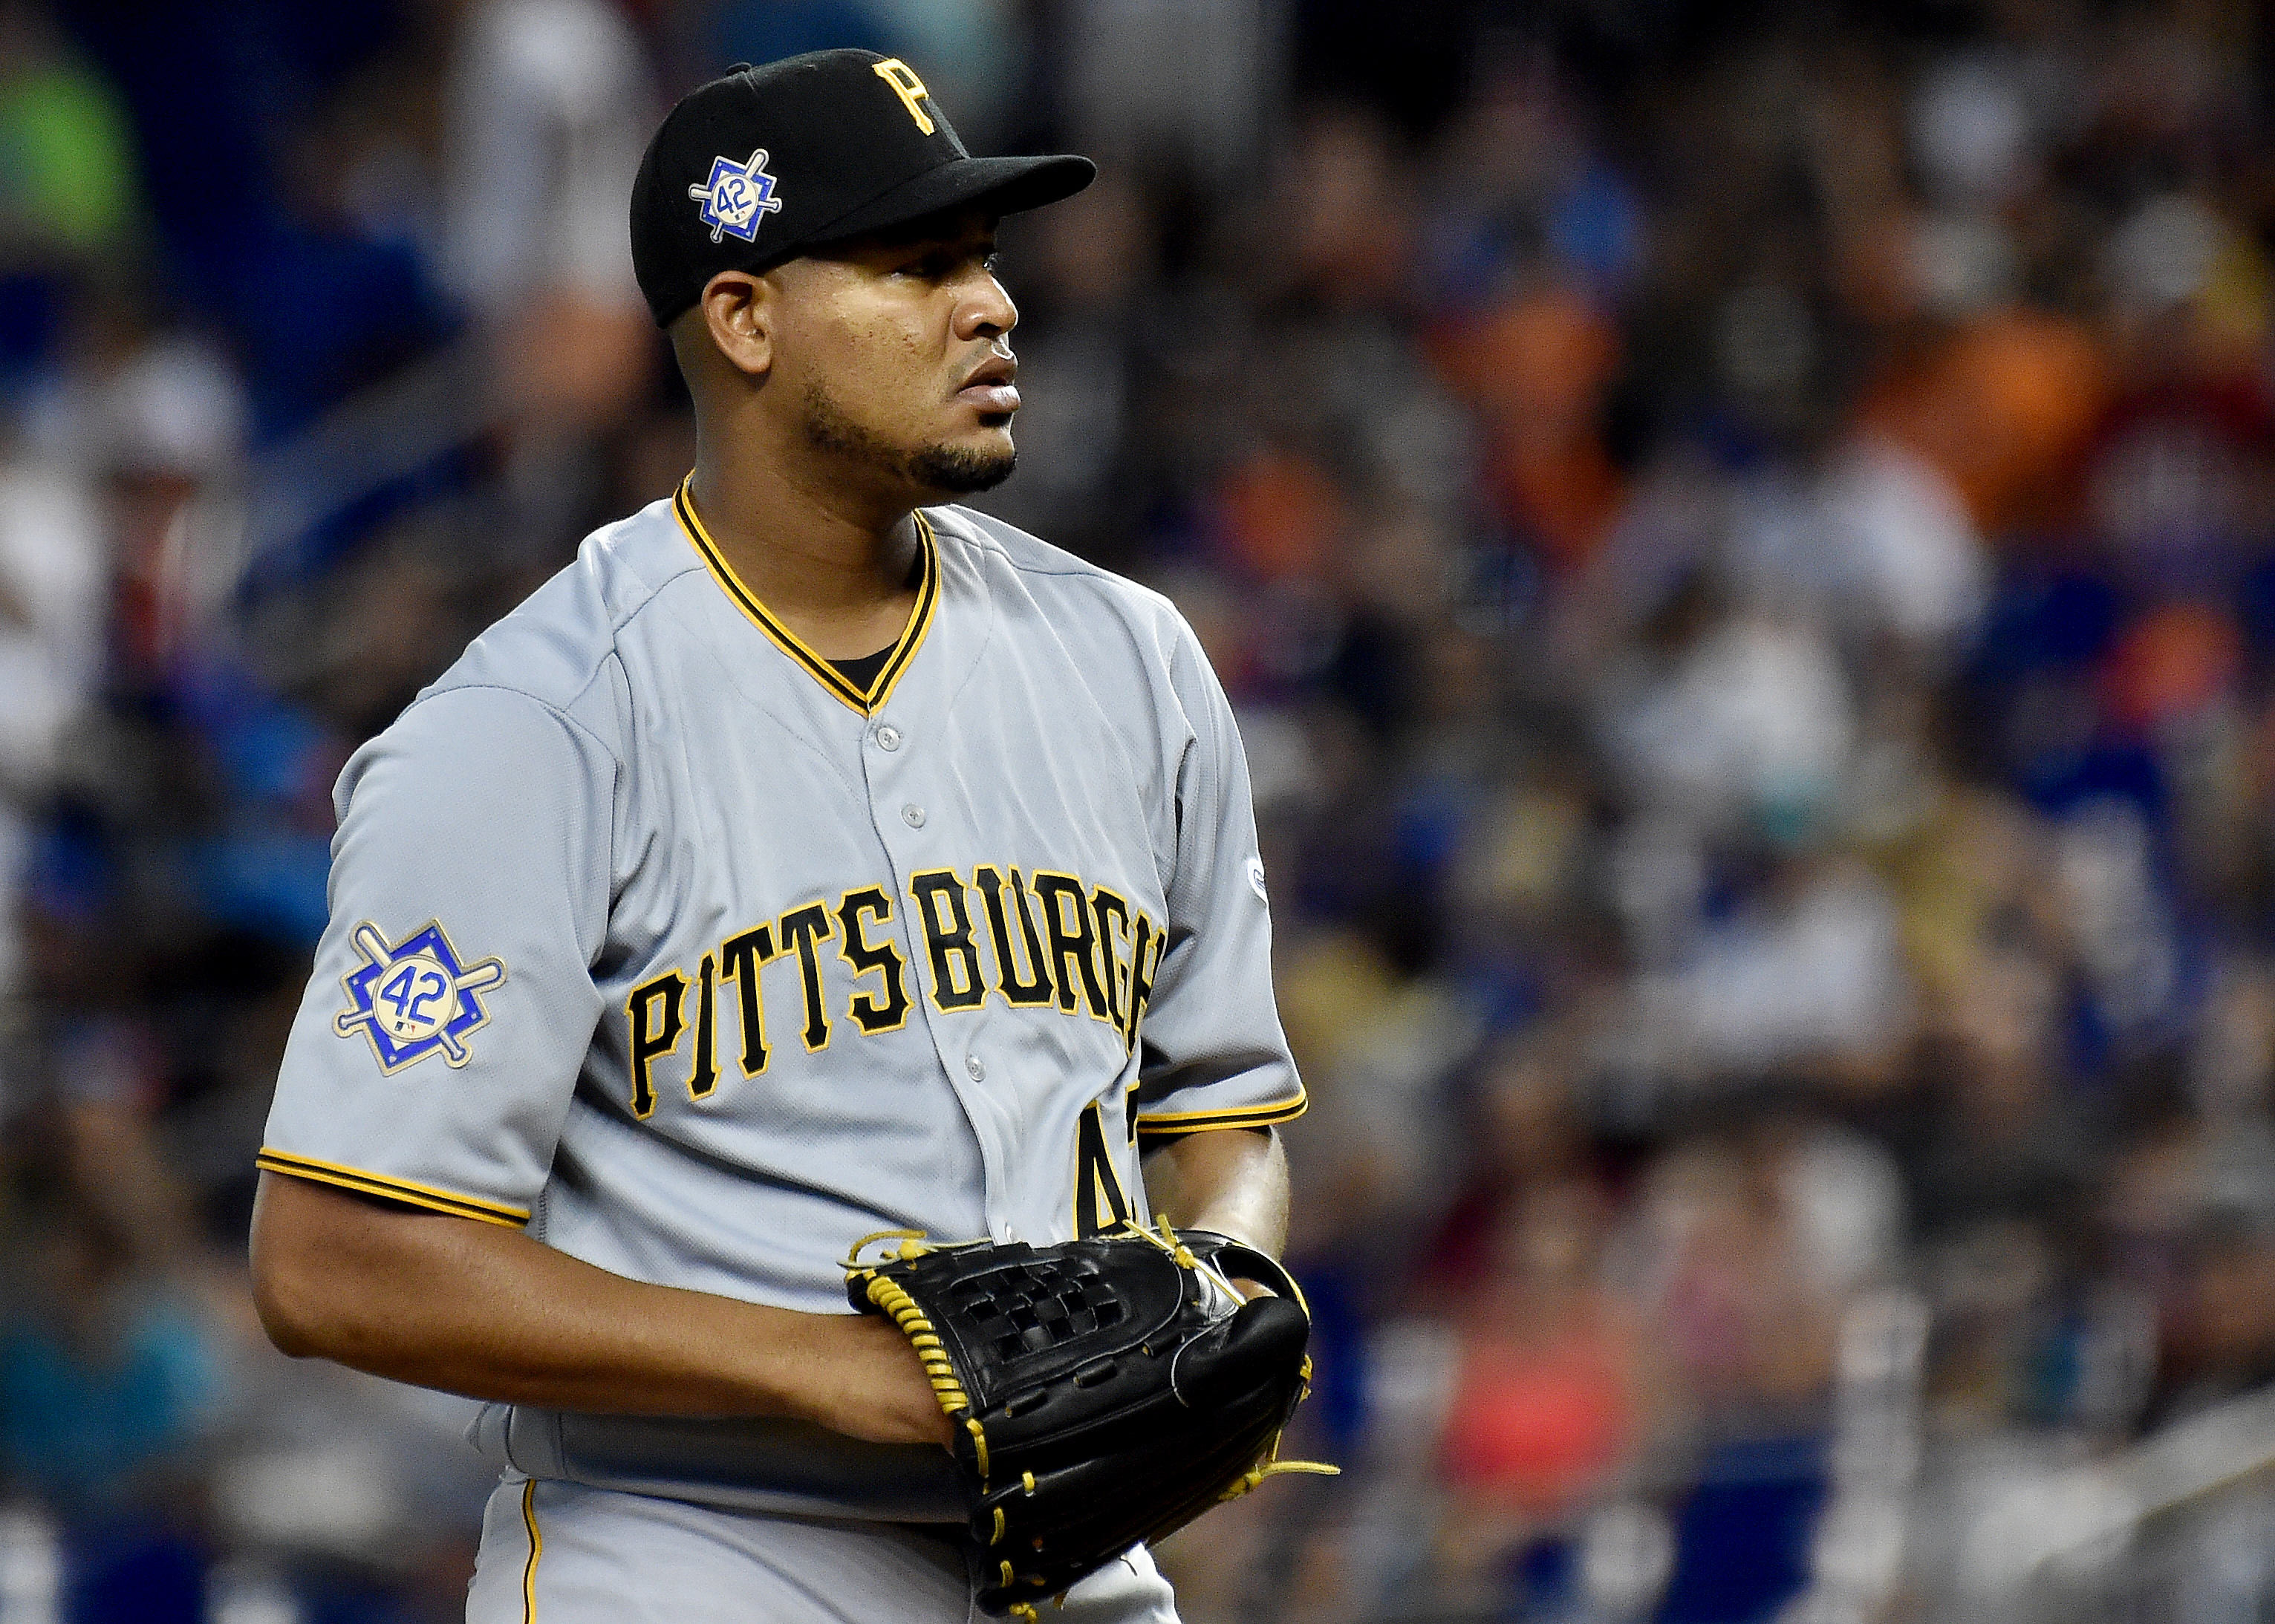 Pittsburgh Pirates Matchups to Watch: June 25-July 1